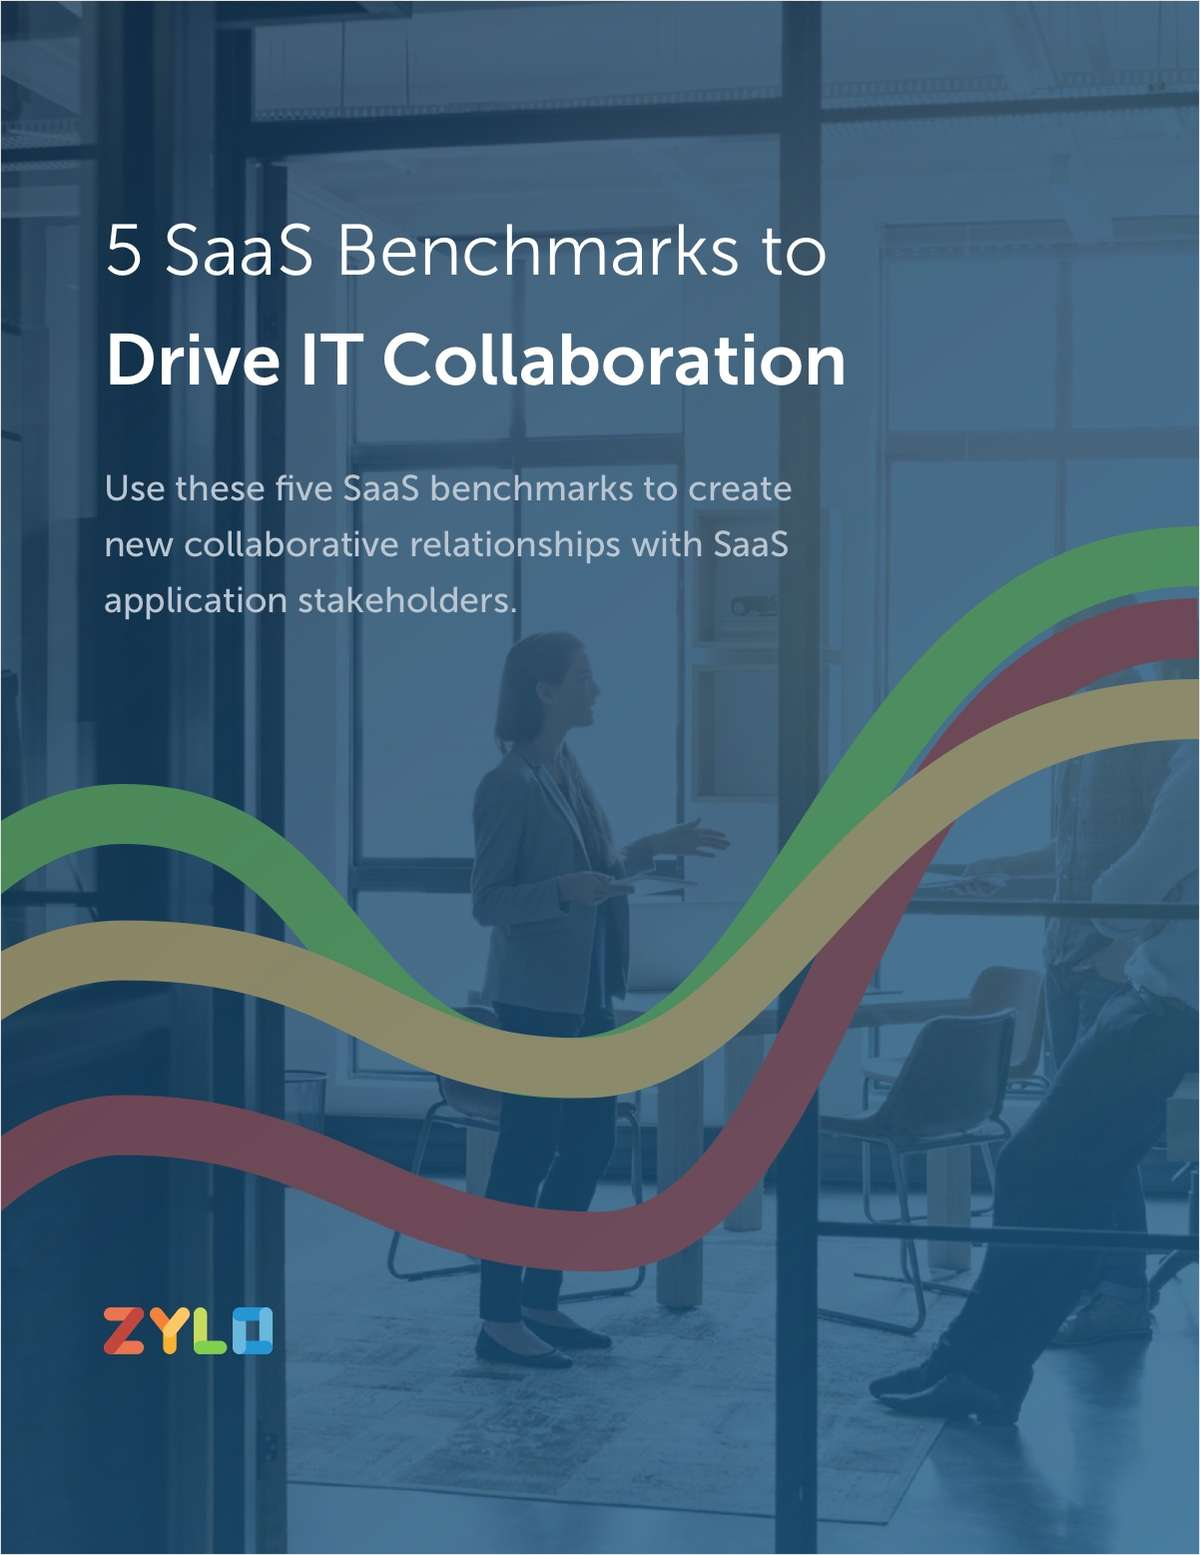 5 SaaS Benchmarks to Drive IT Collaboration